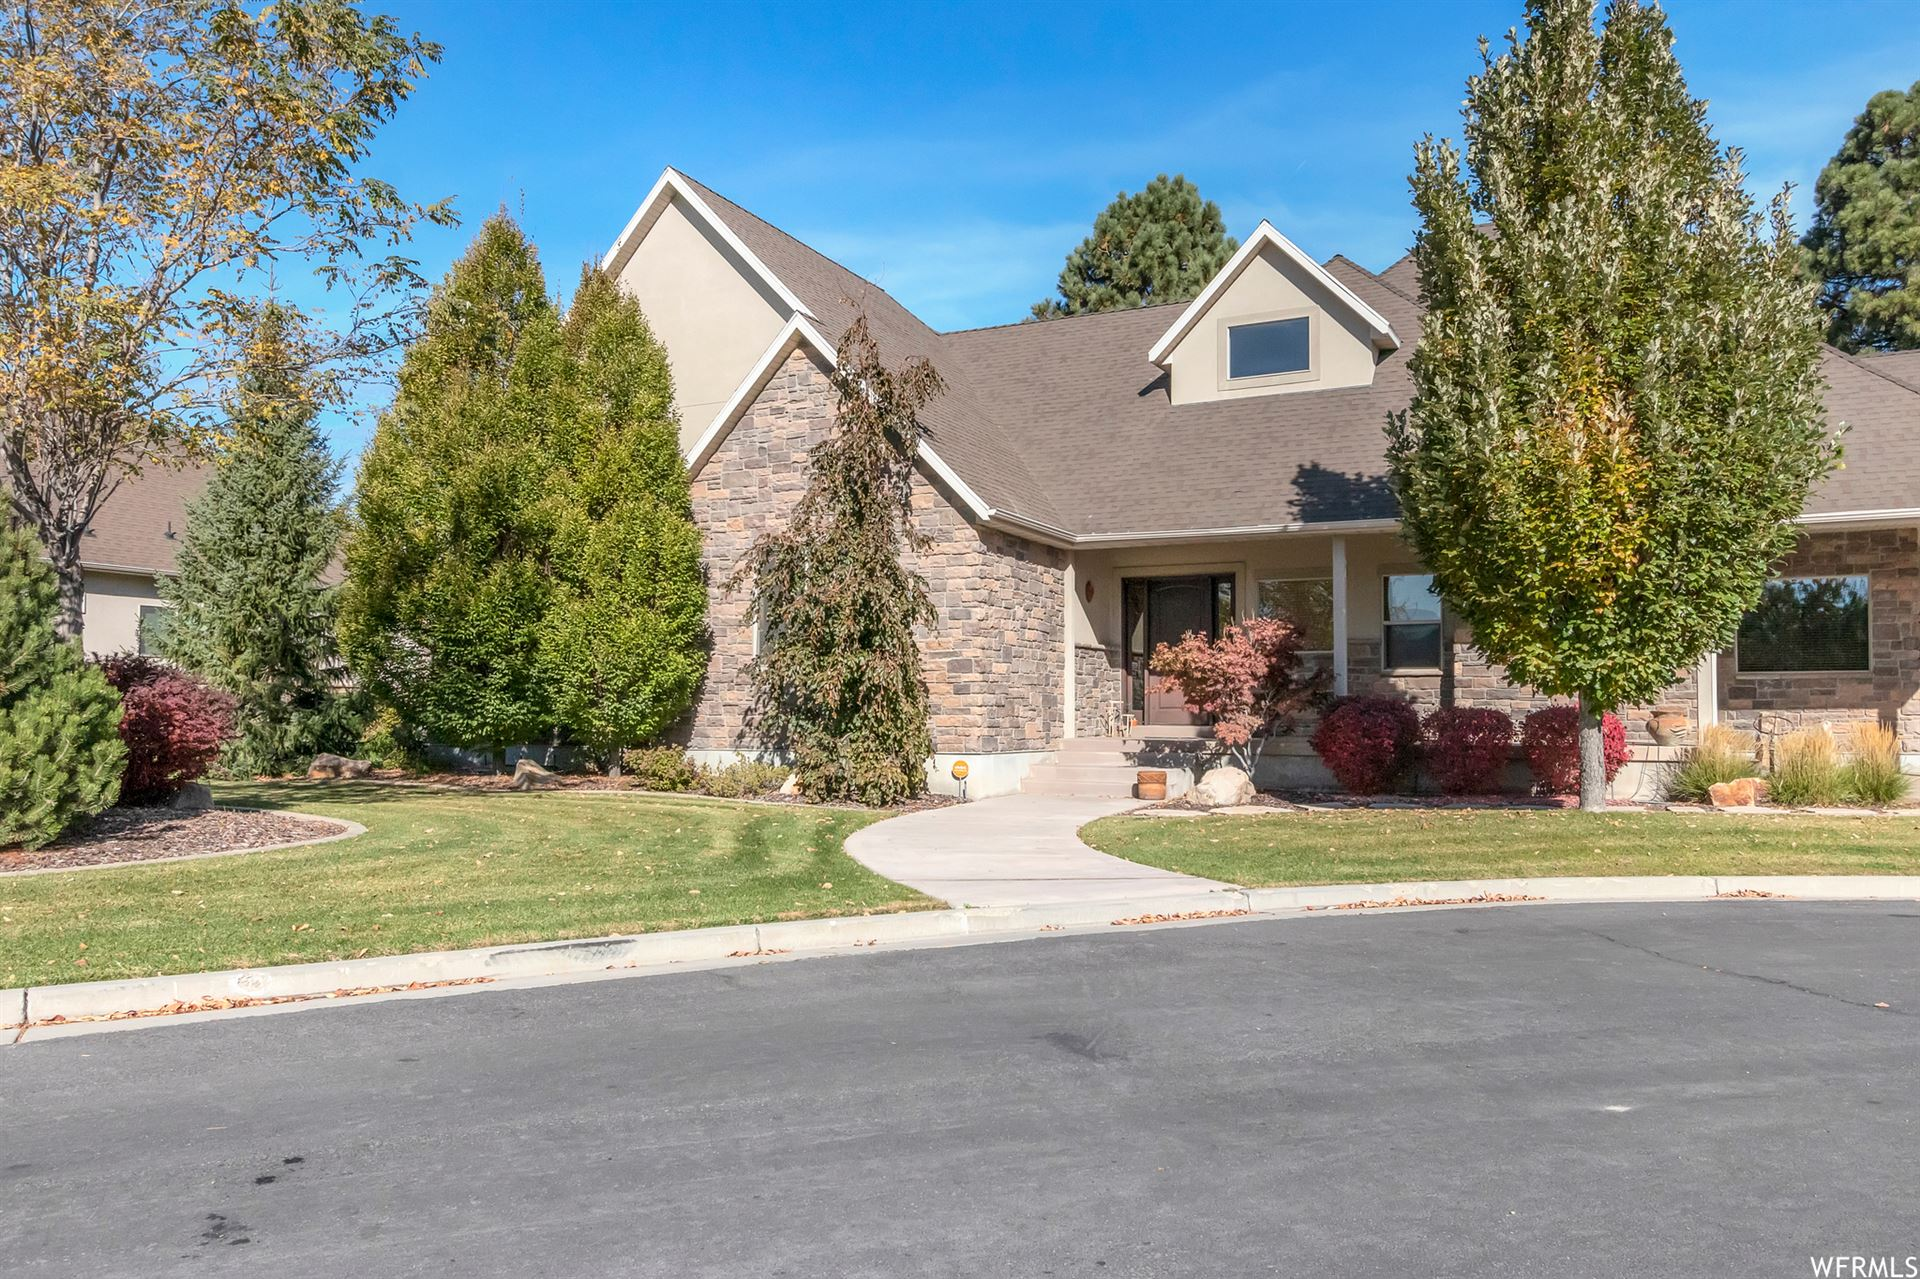 Photo of 1735 E TUSCAN RIDGE CV, Sandy, UT 84092 (MLS # 1711131)